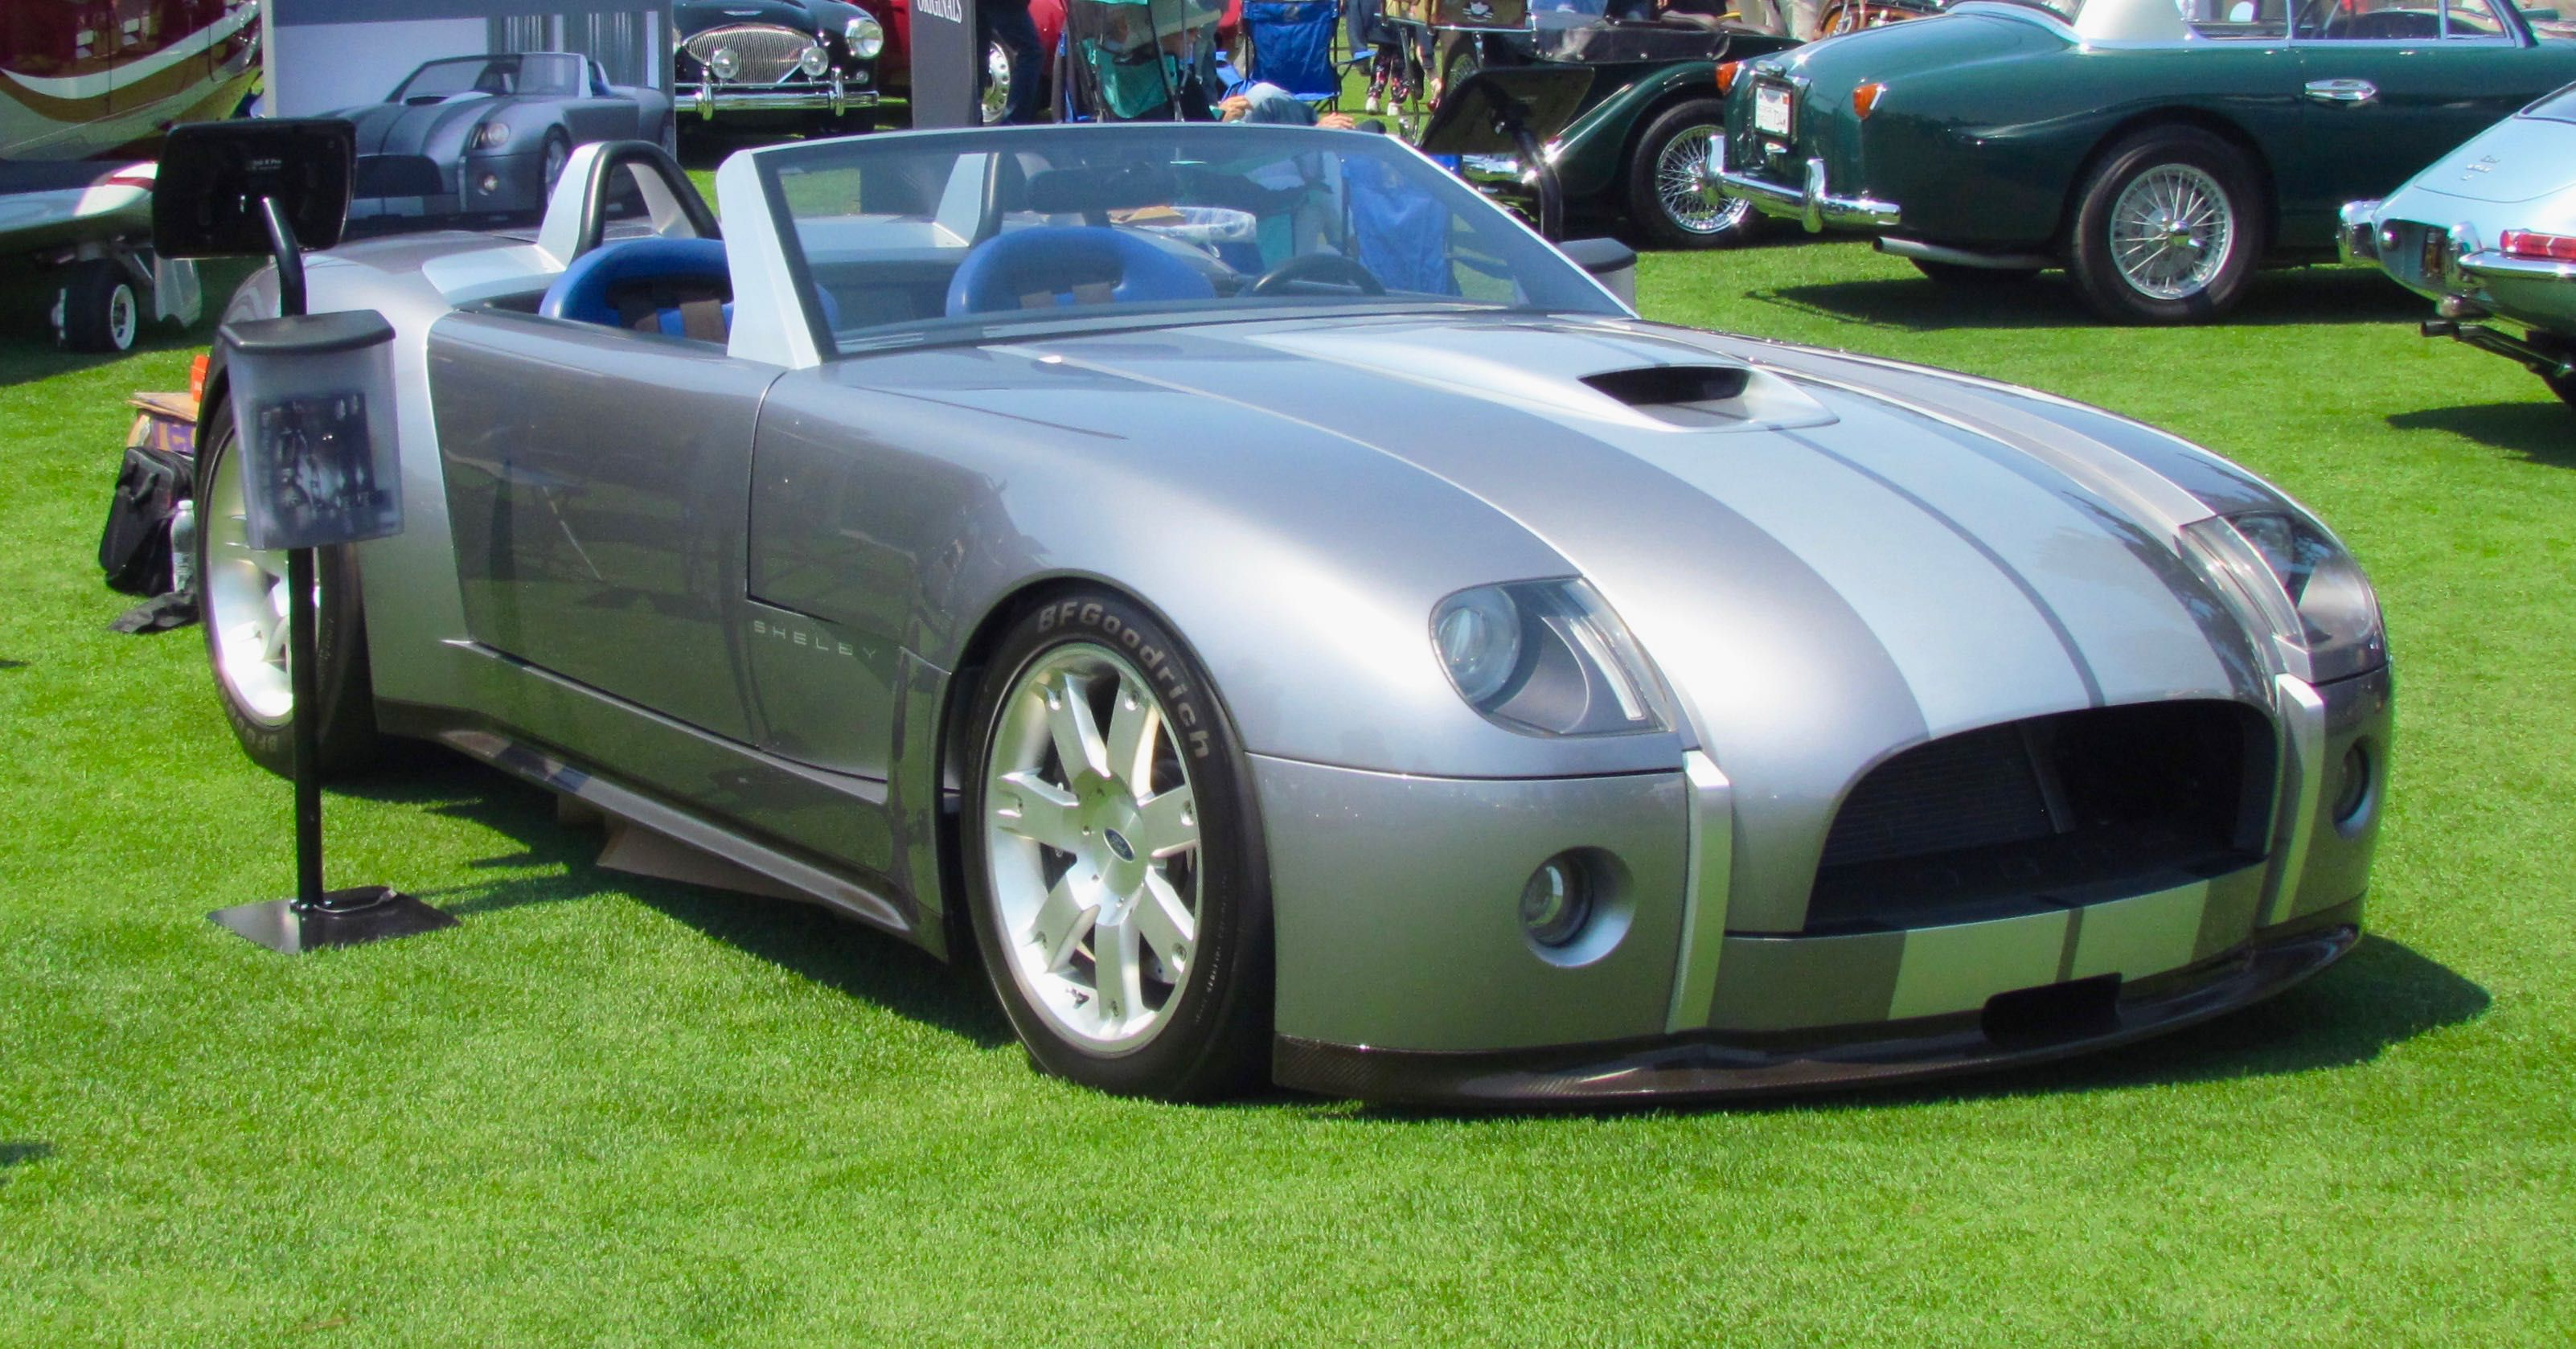 V10 Powered Ford Shelby Cobra Concept Up For Bidding In November